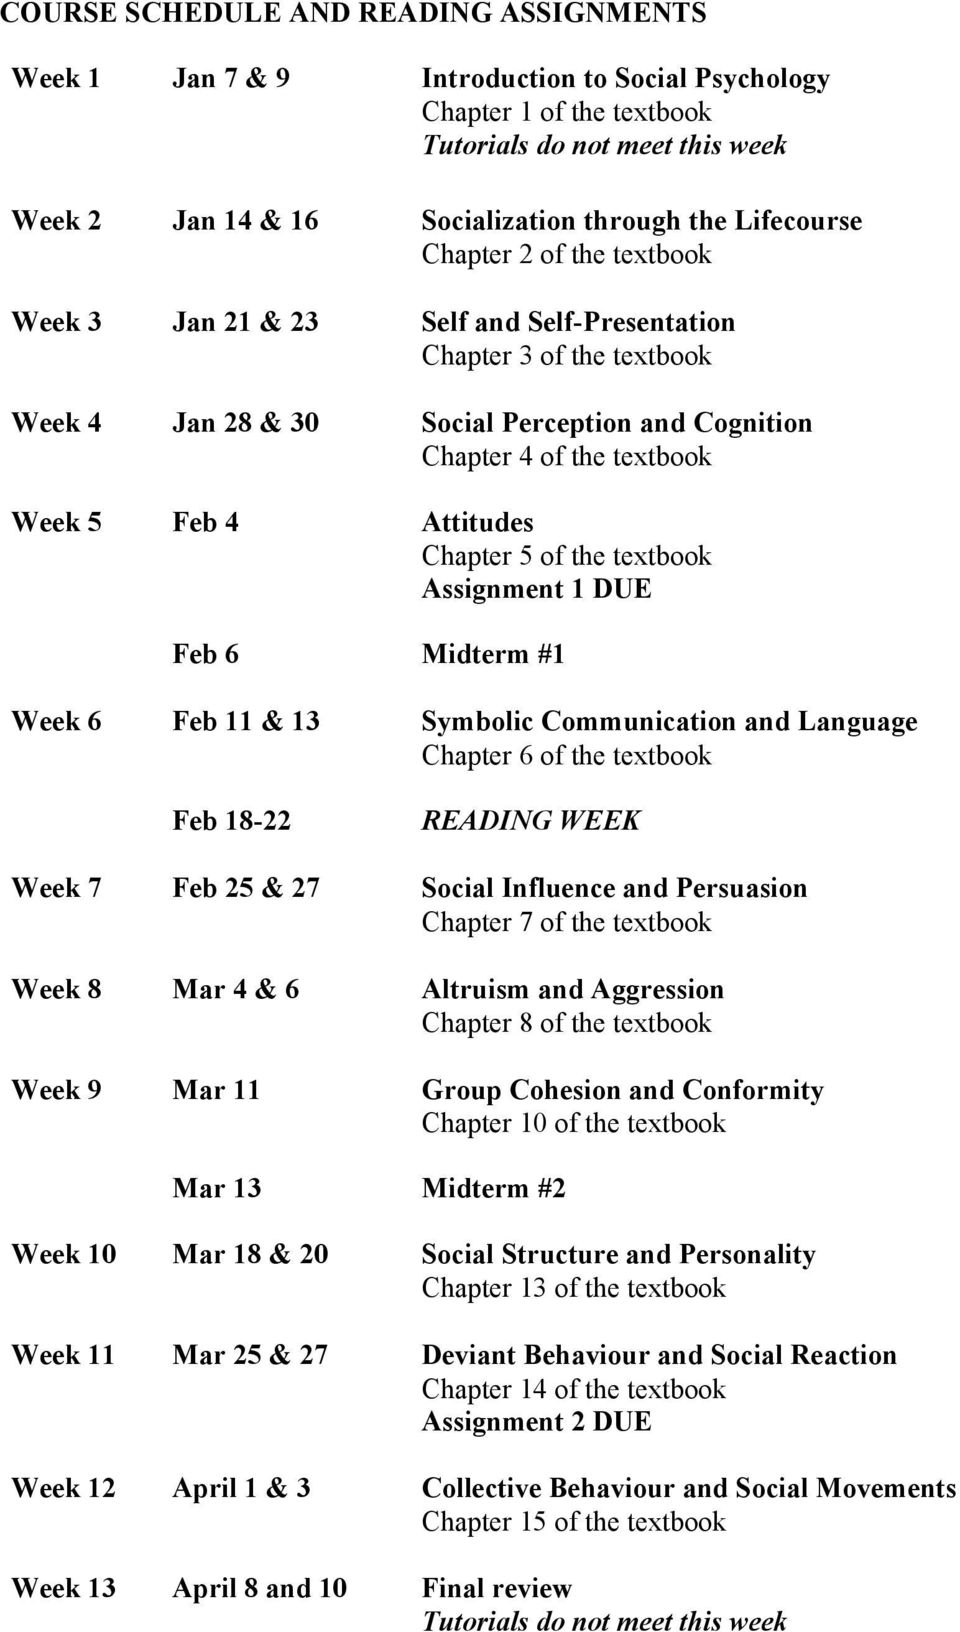 Attitudes Chapter 5 of the textbook Assignment 1 DUE Feb 6 Midterm #1 Week 6 Feb 11 & 13 Symbolic Communication and Language Chapter 6 of the textbook Feb 18-22 READING WEEK Week 7 Feb 25 & 27 Social